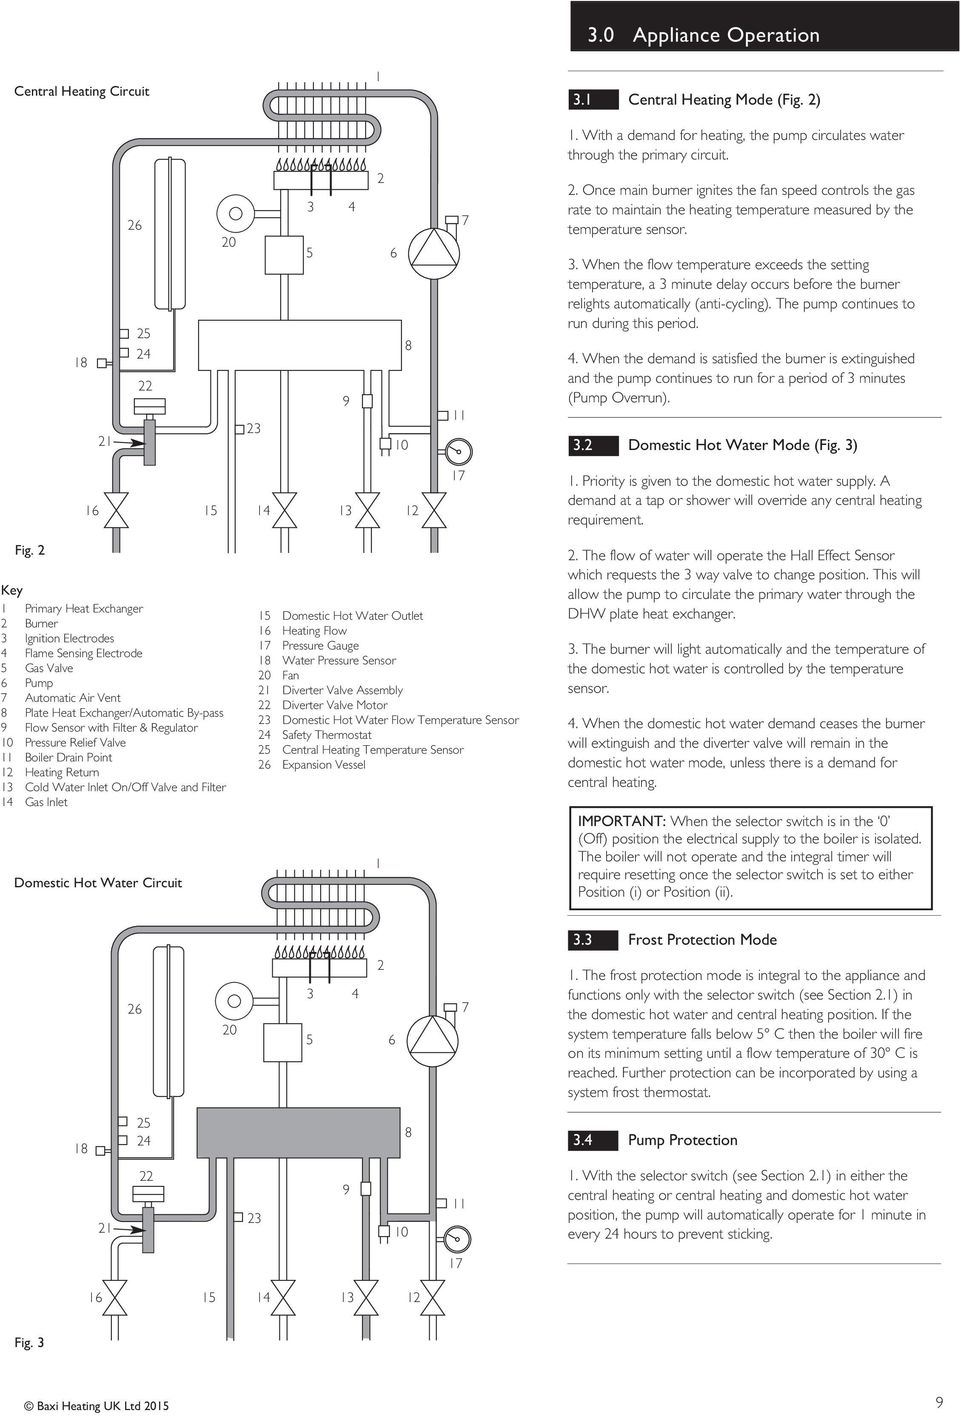 Installation And Service Manual Duo Tec Combi Lpg Gas Fired Wall Water Flow Pressure Switch Wiring Diagram The Pump Continues To Run During This Period 4 When Demand Is Satisfied